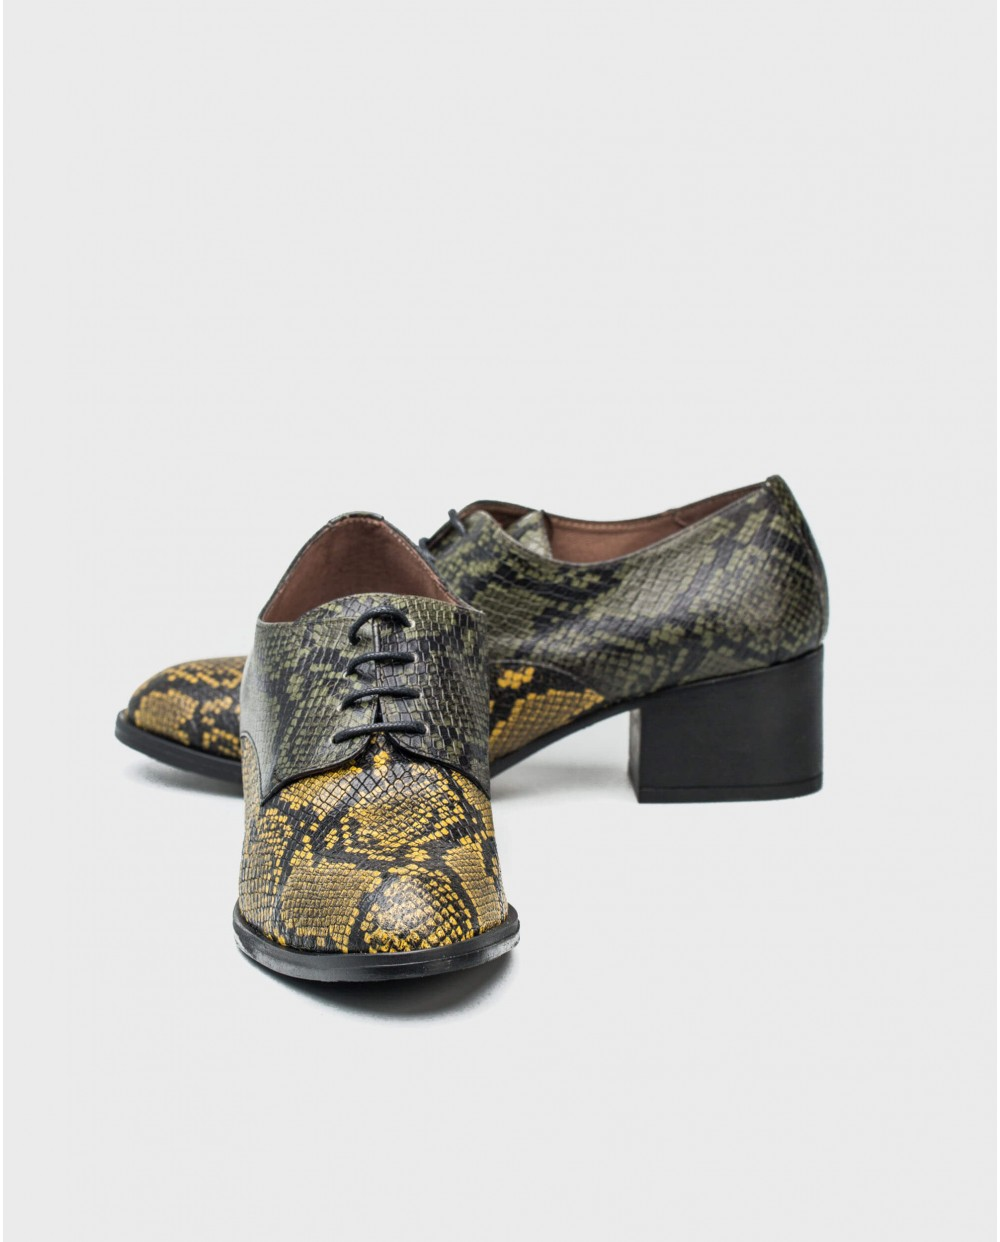 Wonders-Heels-Leather shoe in a combination of snake print